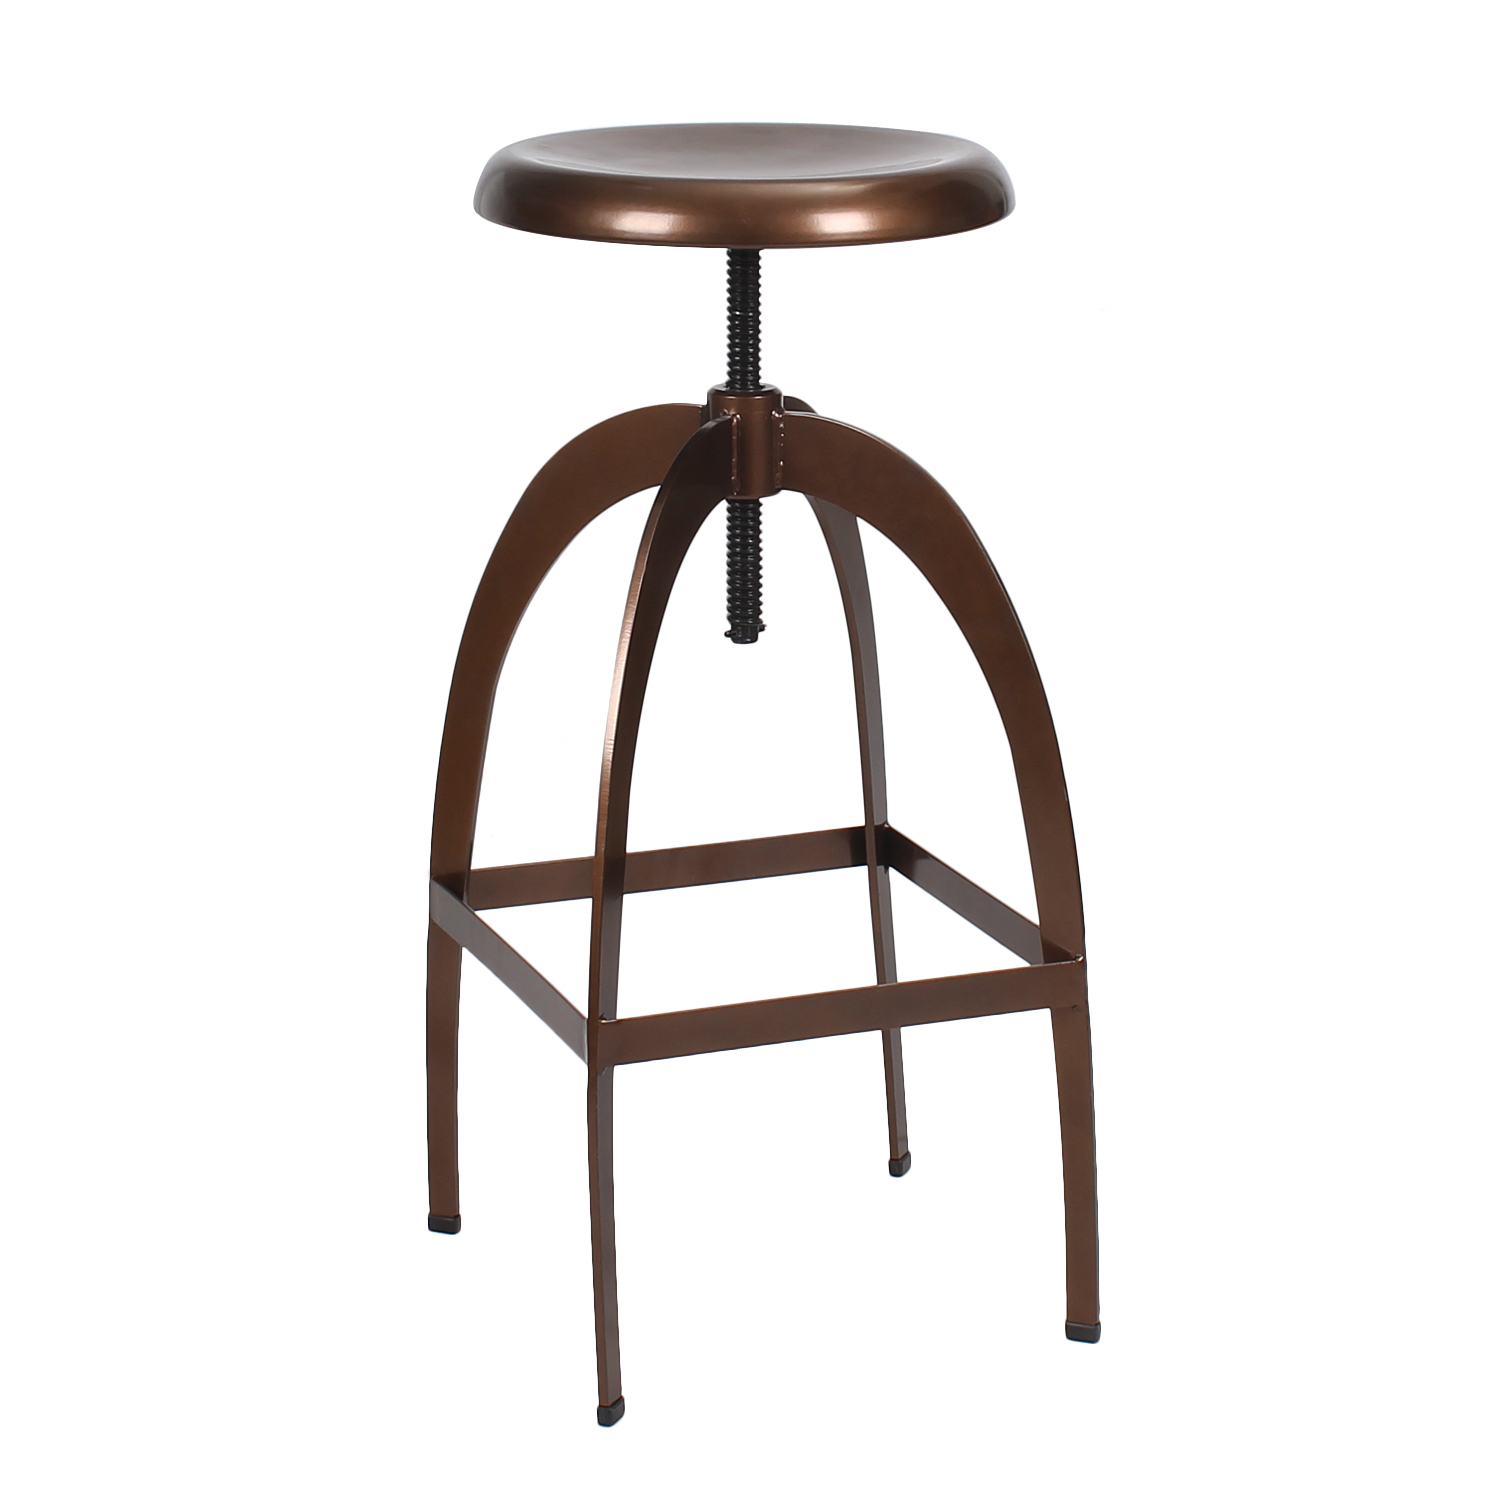 New Copper Metal Wood Counter Stool Kitchen Dining Bar: DecentHome DecentHome Copper Adjustable Logan Metal Stool